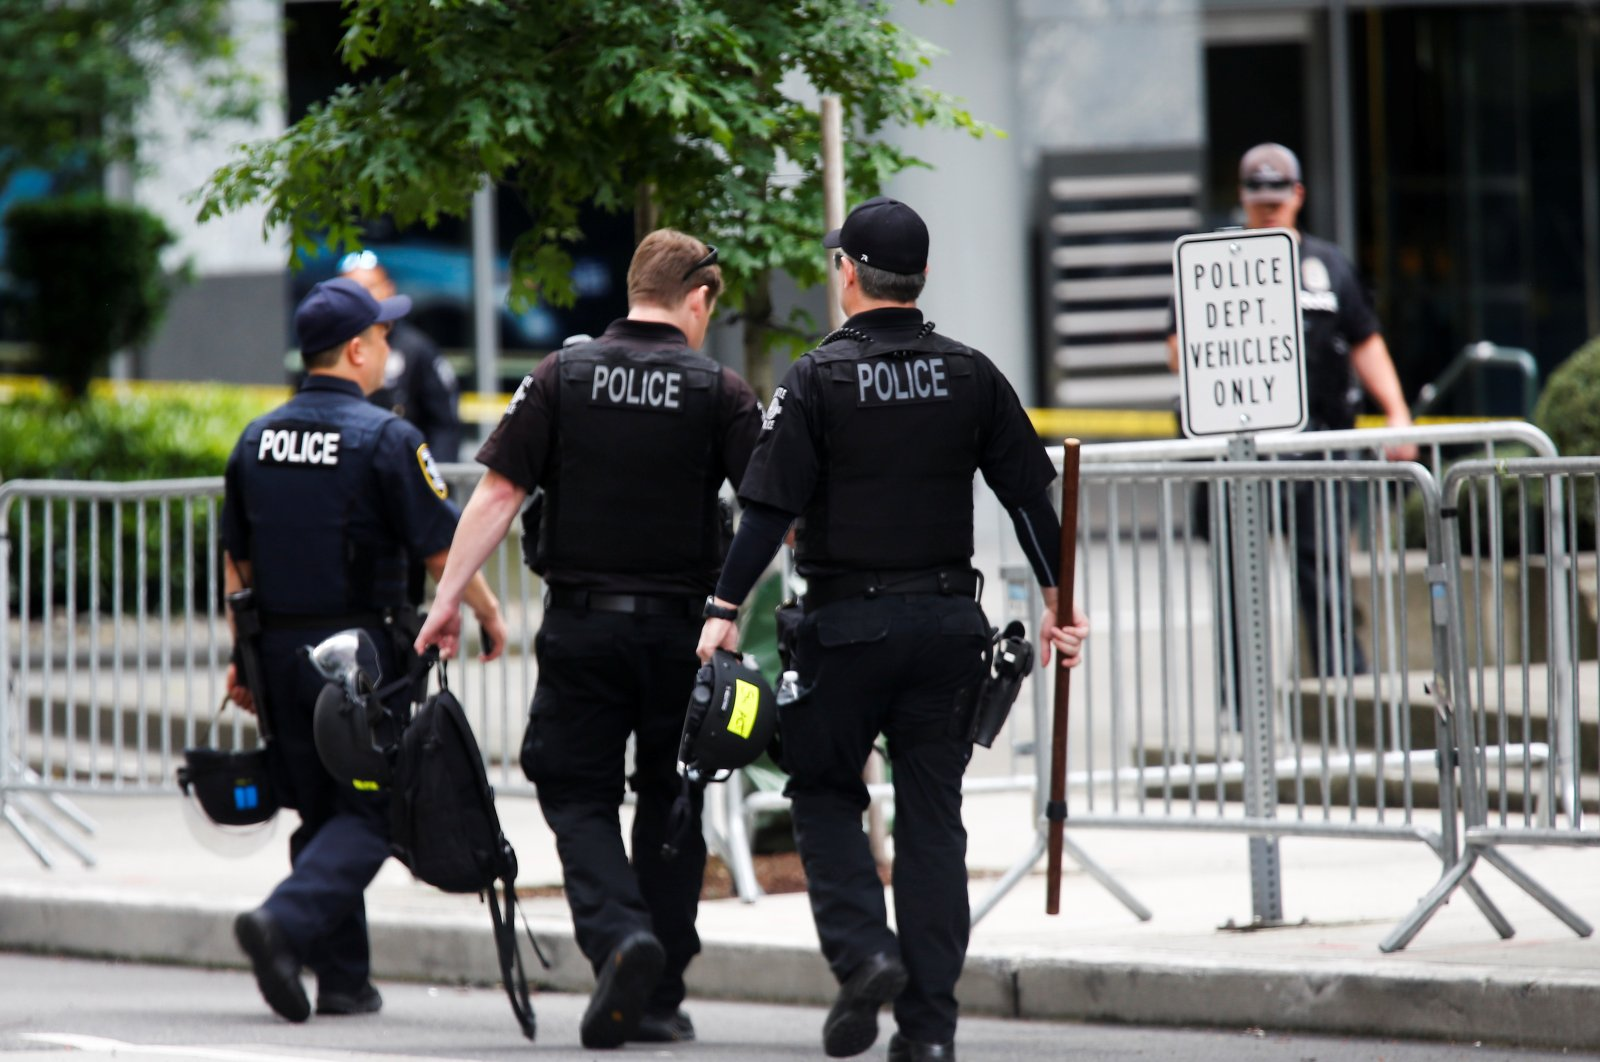 Seattle Police officers carry gear as they walk towards the Seattle Police Department's West Precinct in Seattle, Washington, U.S. June 10, 2020. (Reuters Photo)